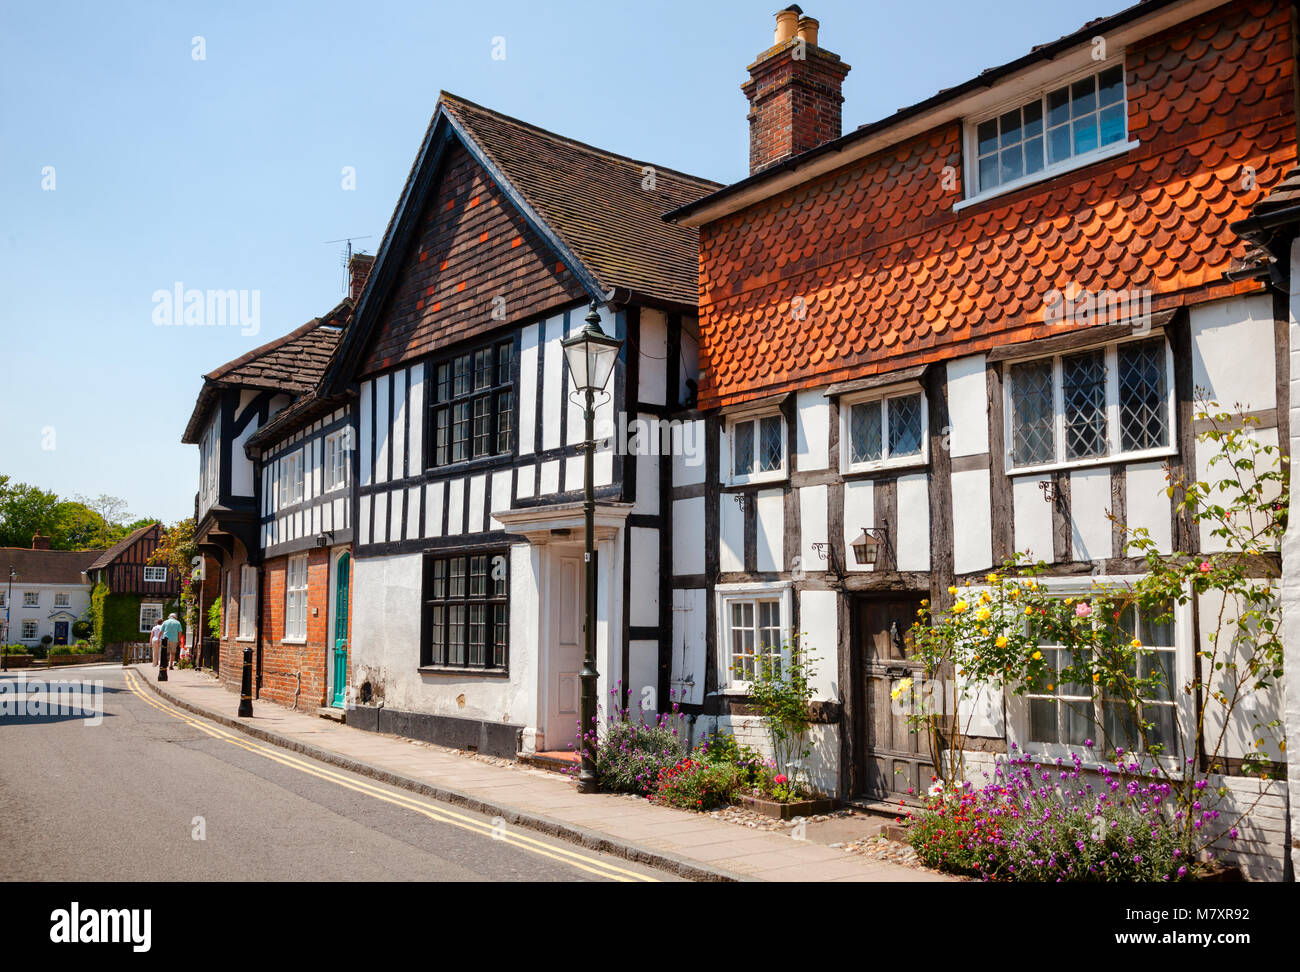 STEYNING, UK - JUN 6, 2013: Old town street with Tudor style timber frame houses - Stock Image